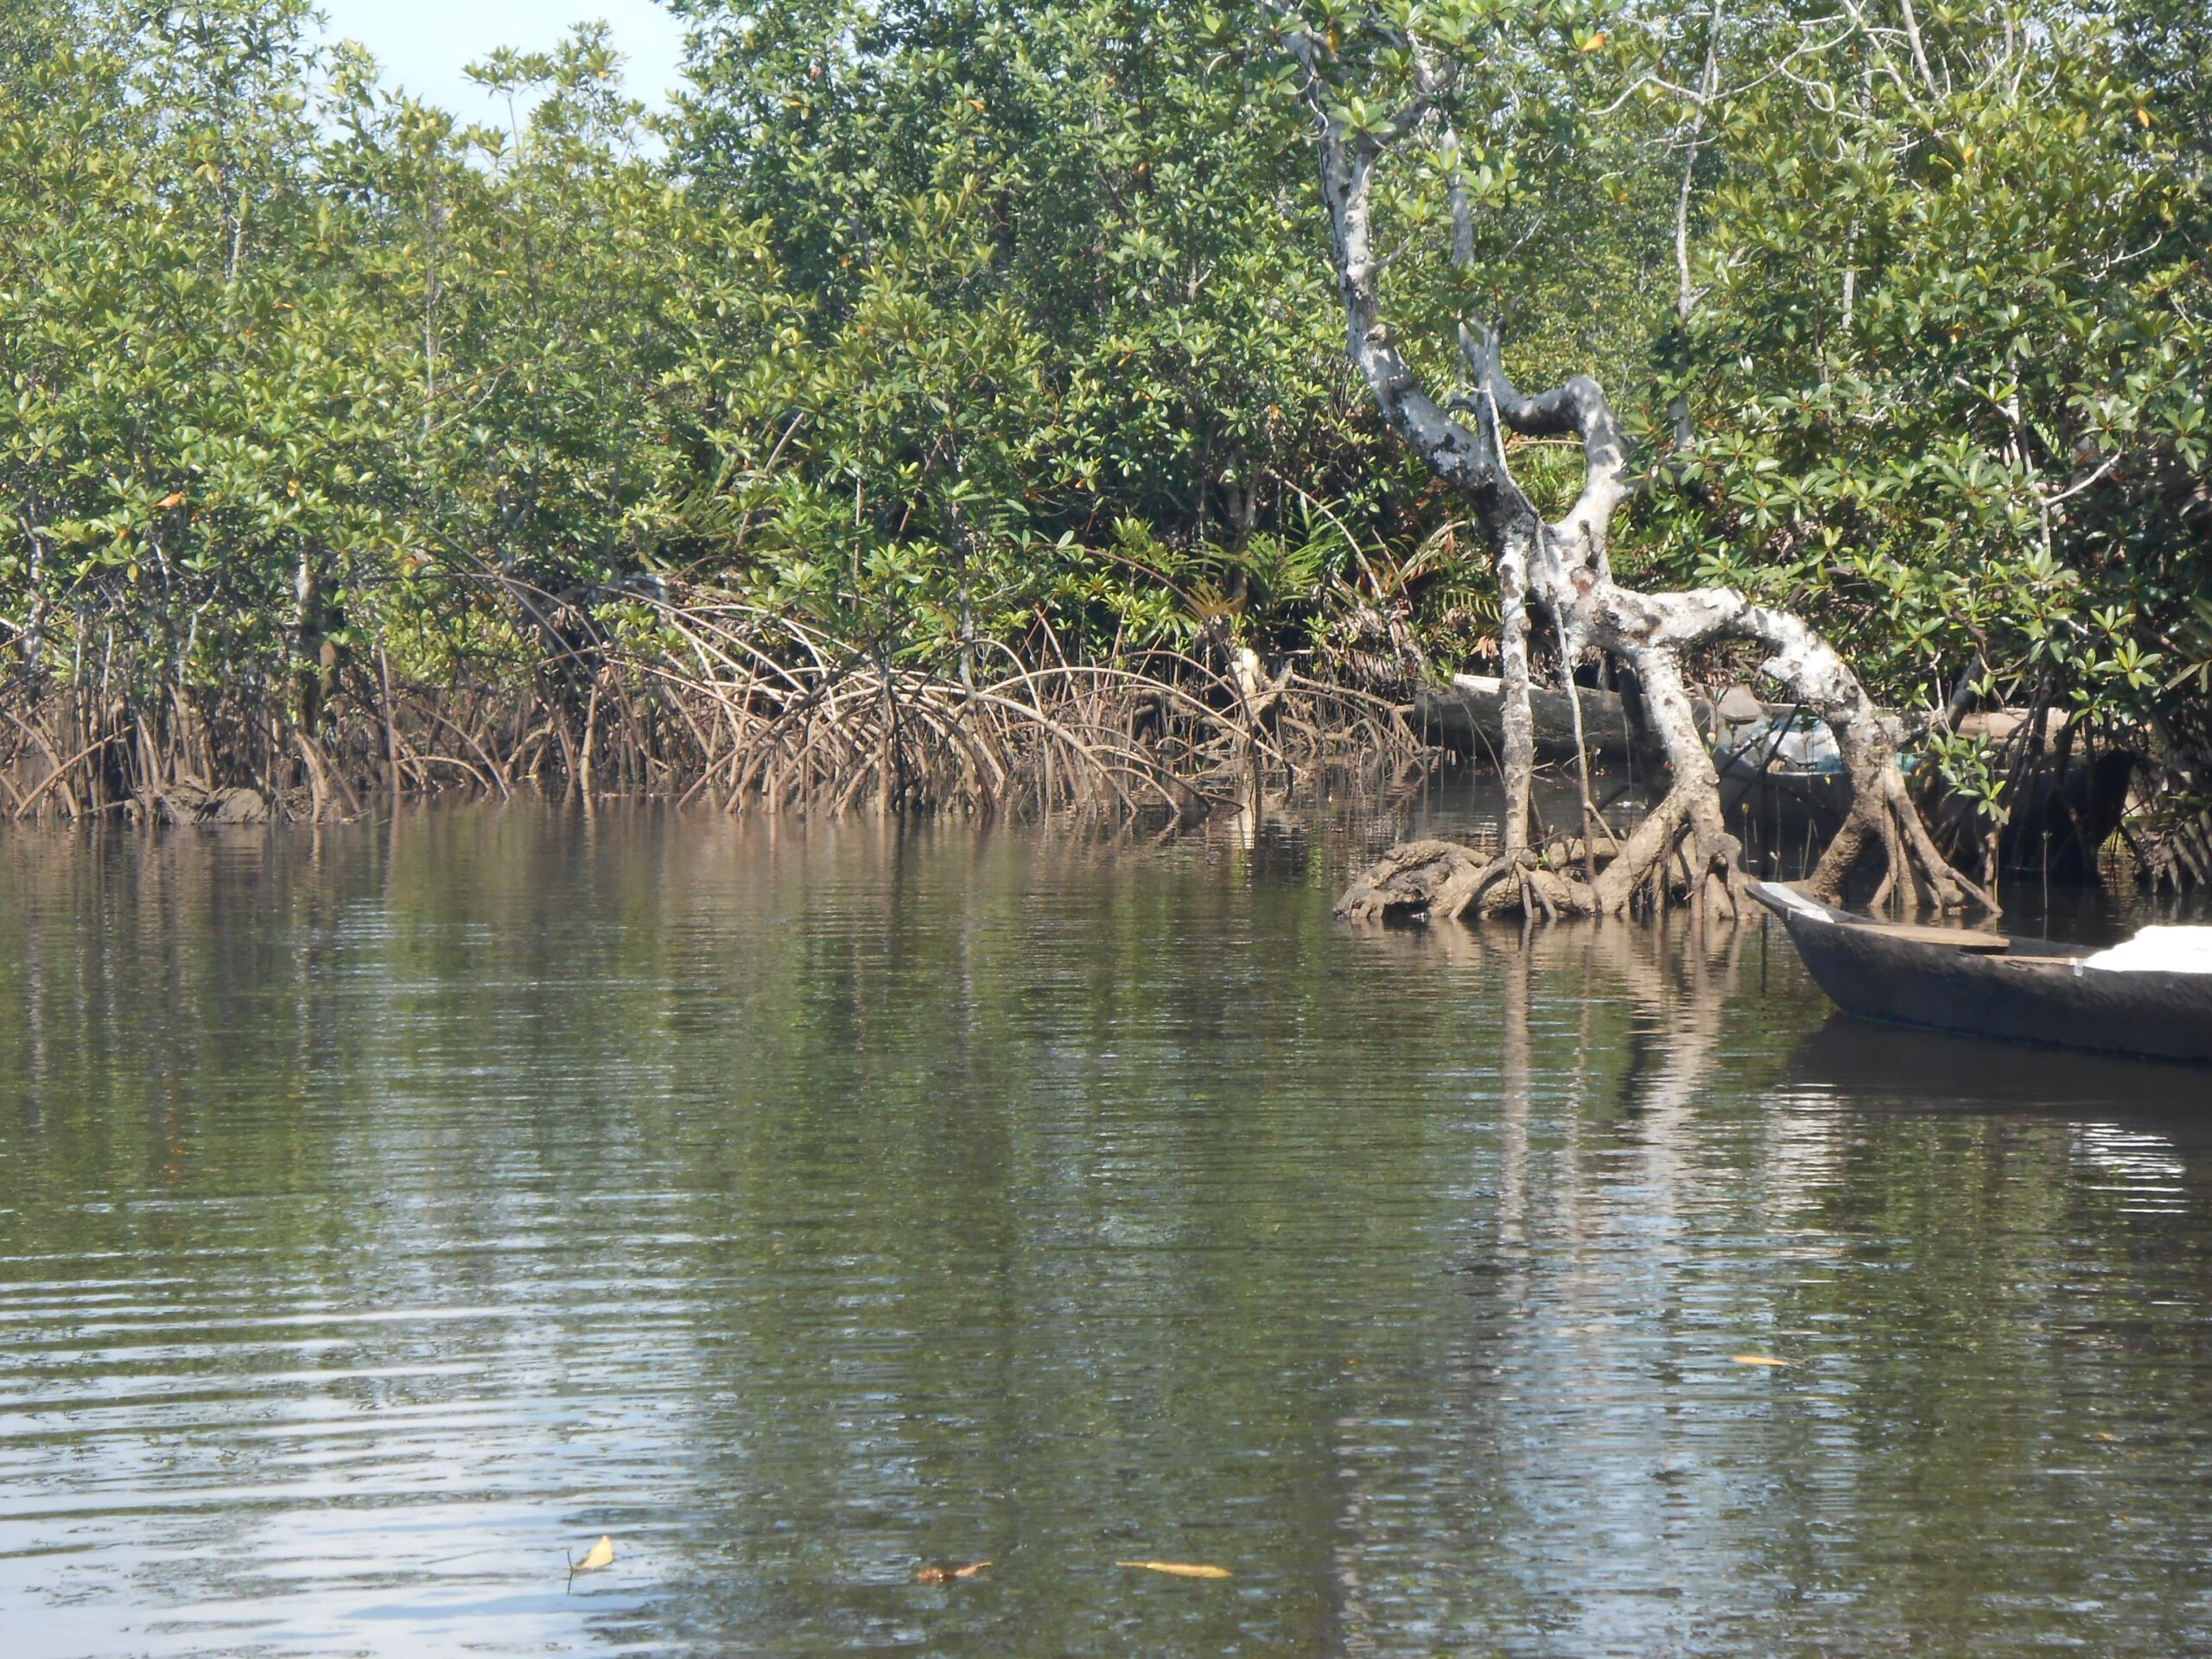 Projet CAMERR | Cameroon Mangrove Ecosystem Restoration and Resilience